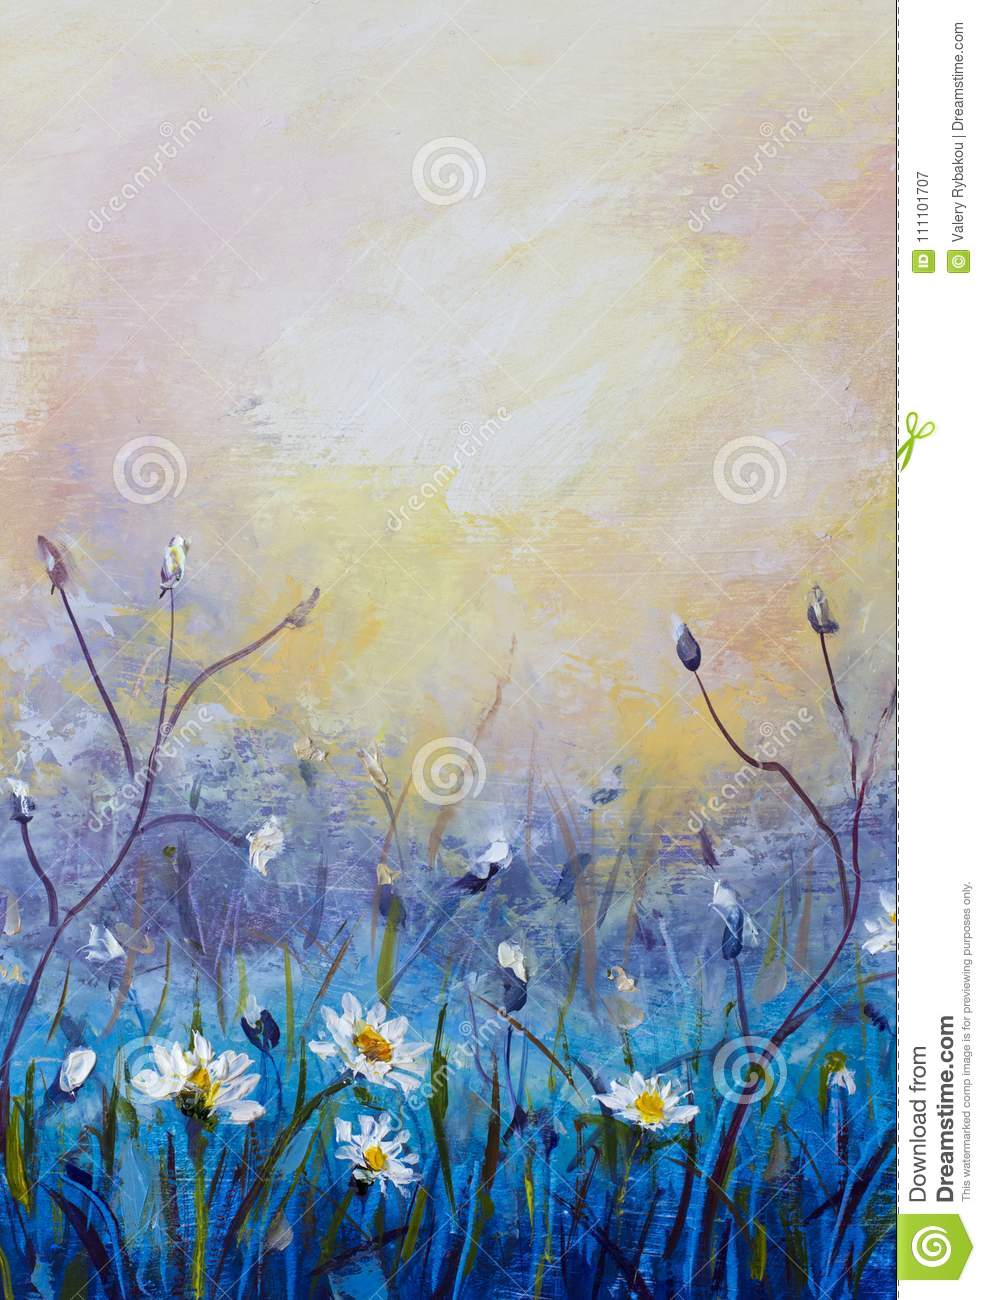 Oil Painting Of Flowers Beautiful Field Flowers On Canvas Modern